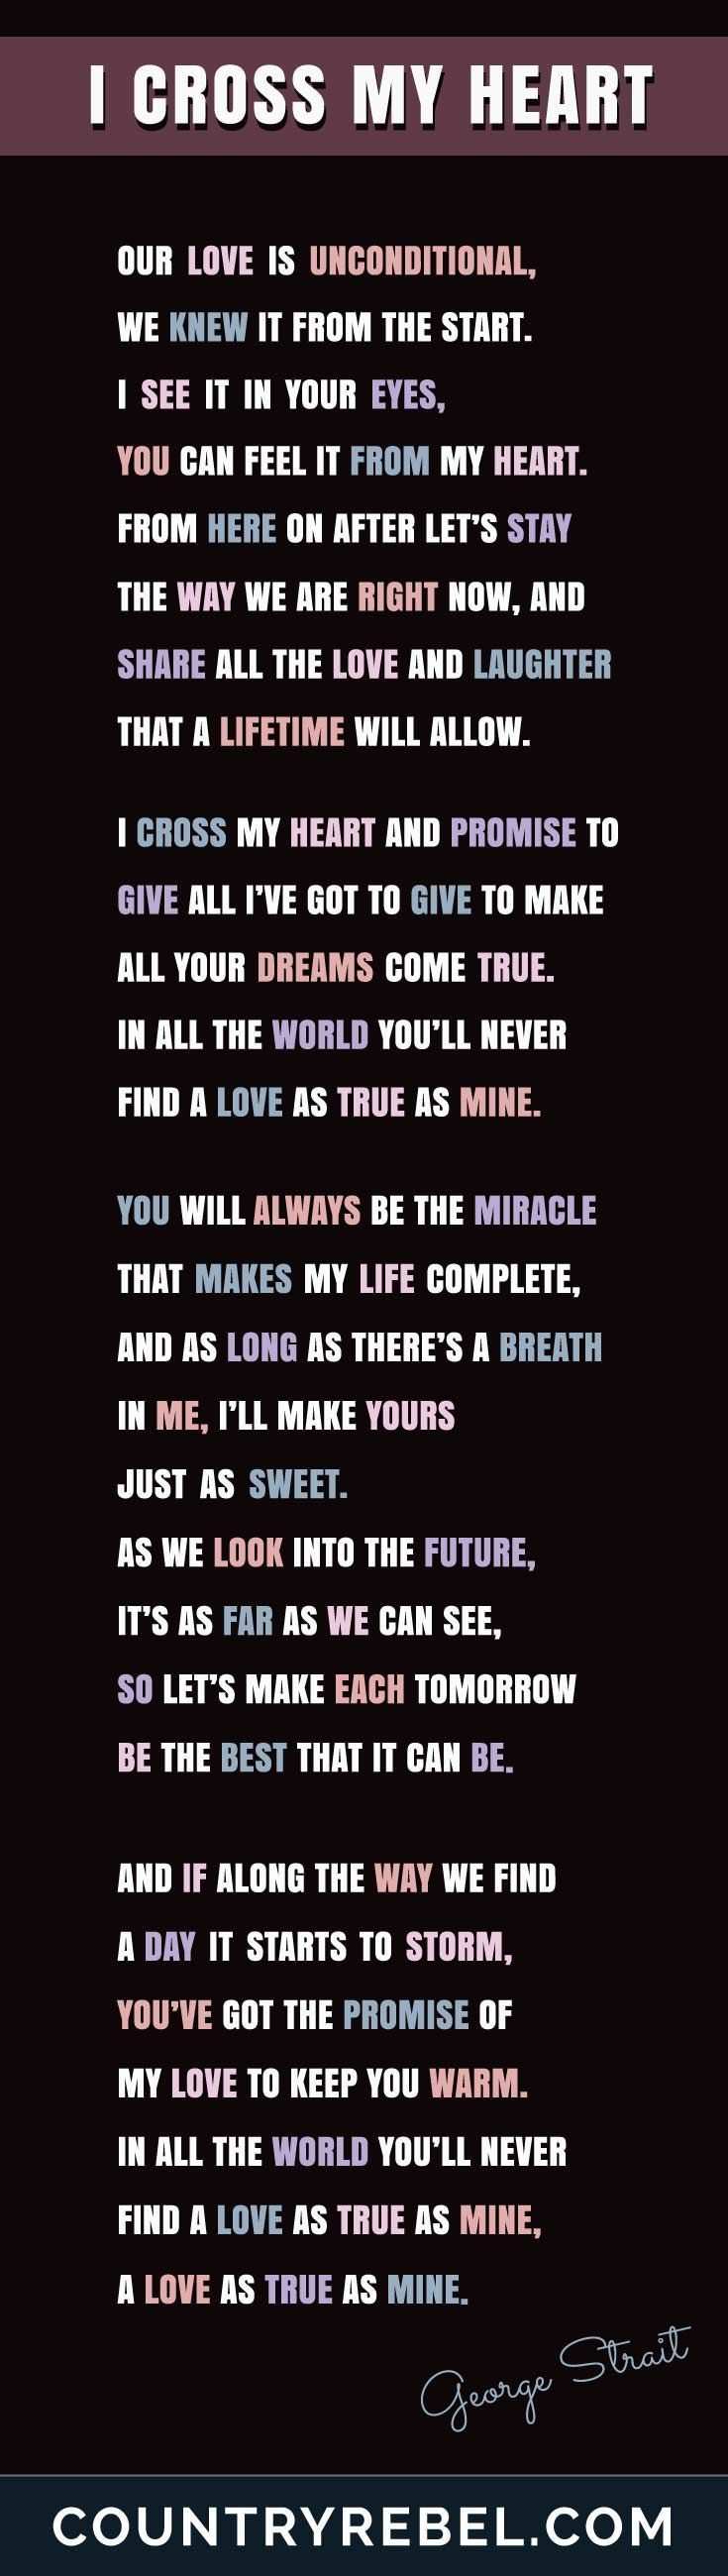 George Strait I Cross My Heart Lyrics | Country Music Quotes - Top Country Songs and Lyrics by Country Rebel Co http://countryrebel.com/blogs/videos/18863863-george-strait-i-cross-my-heart